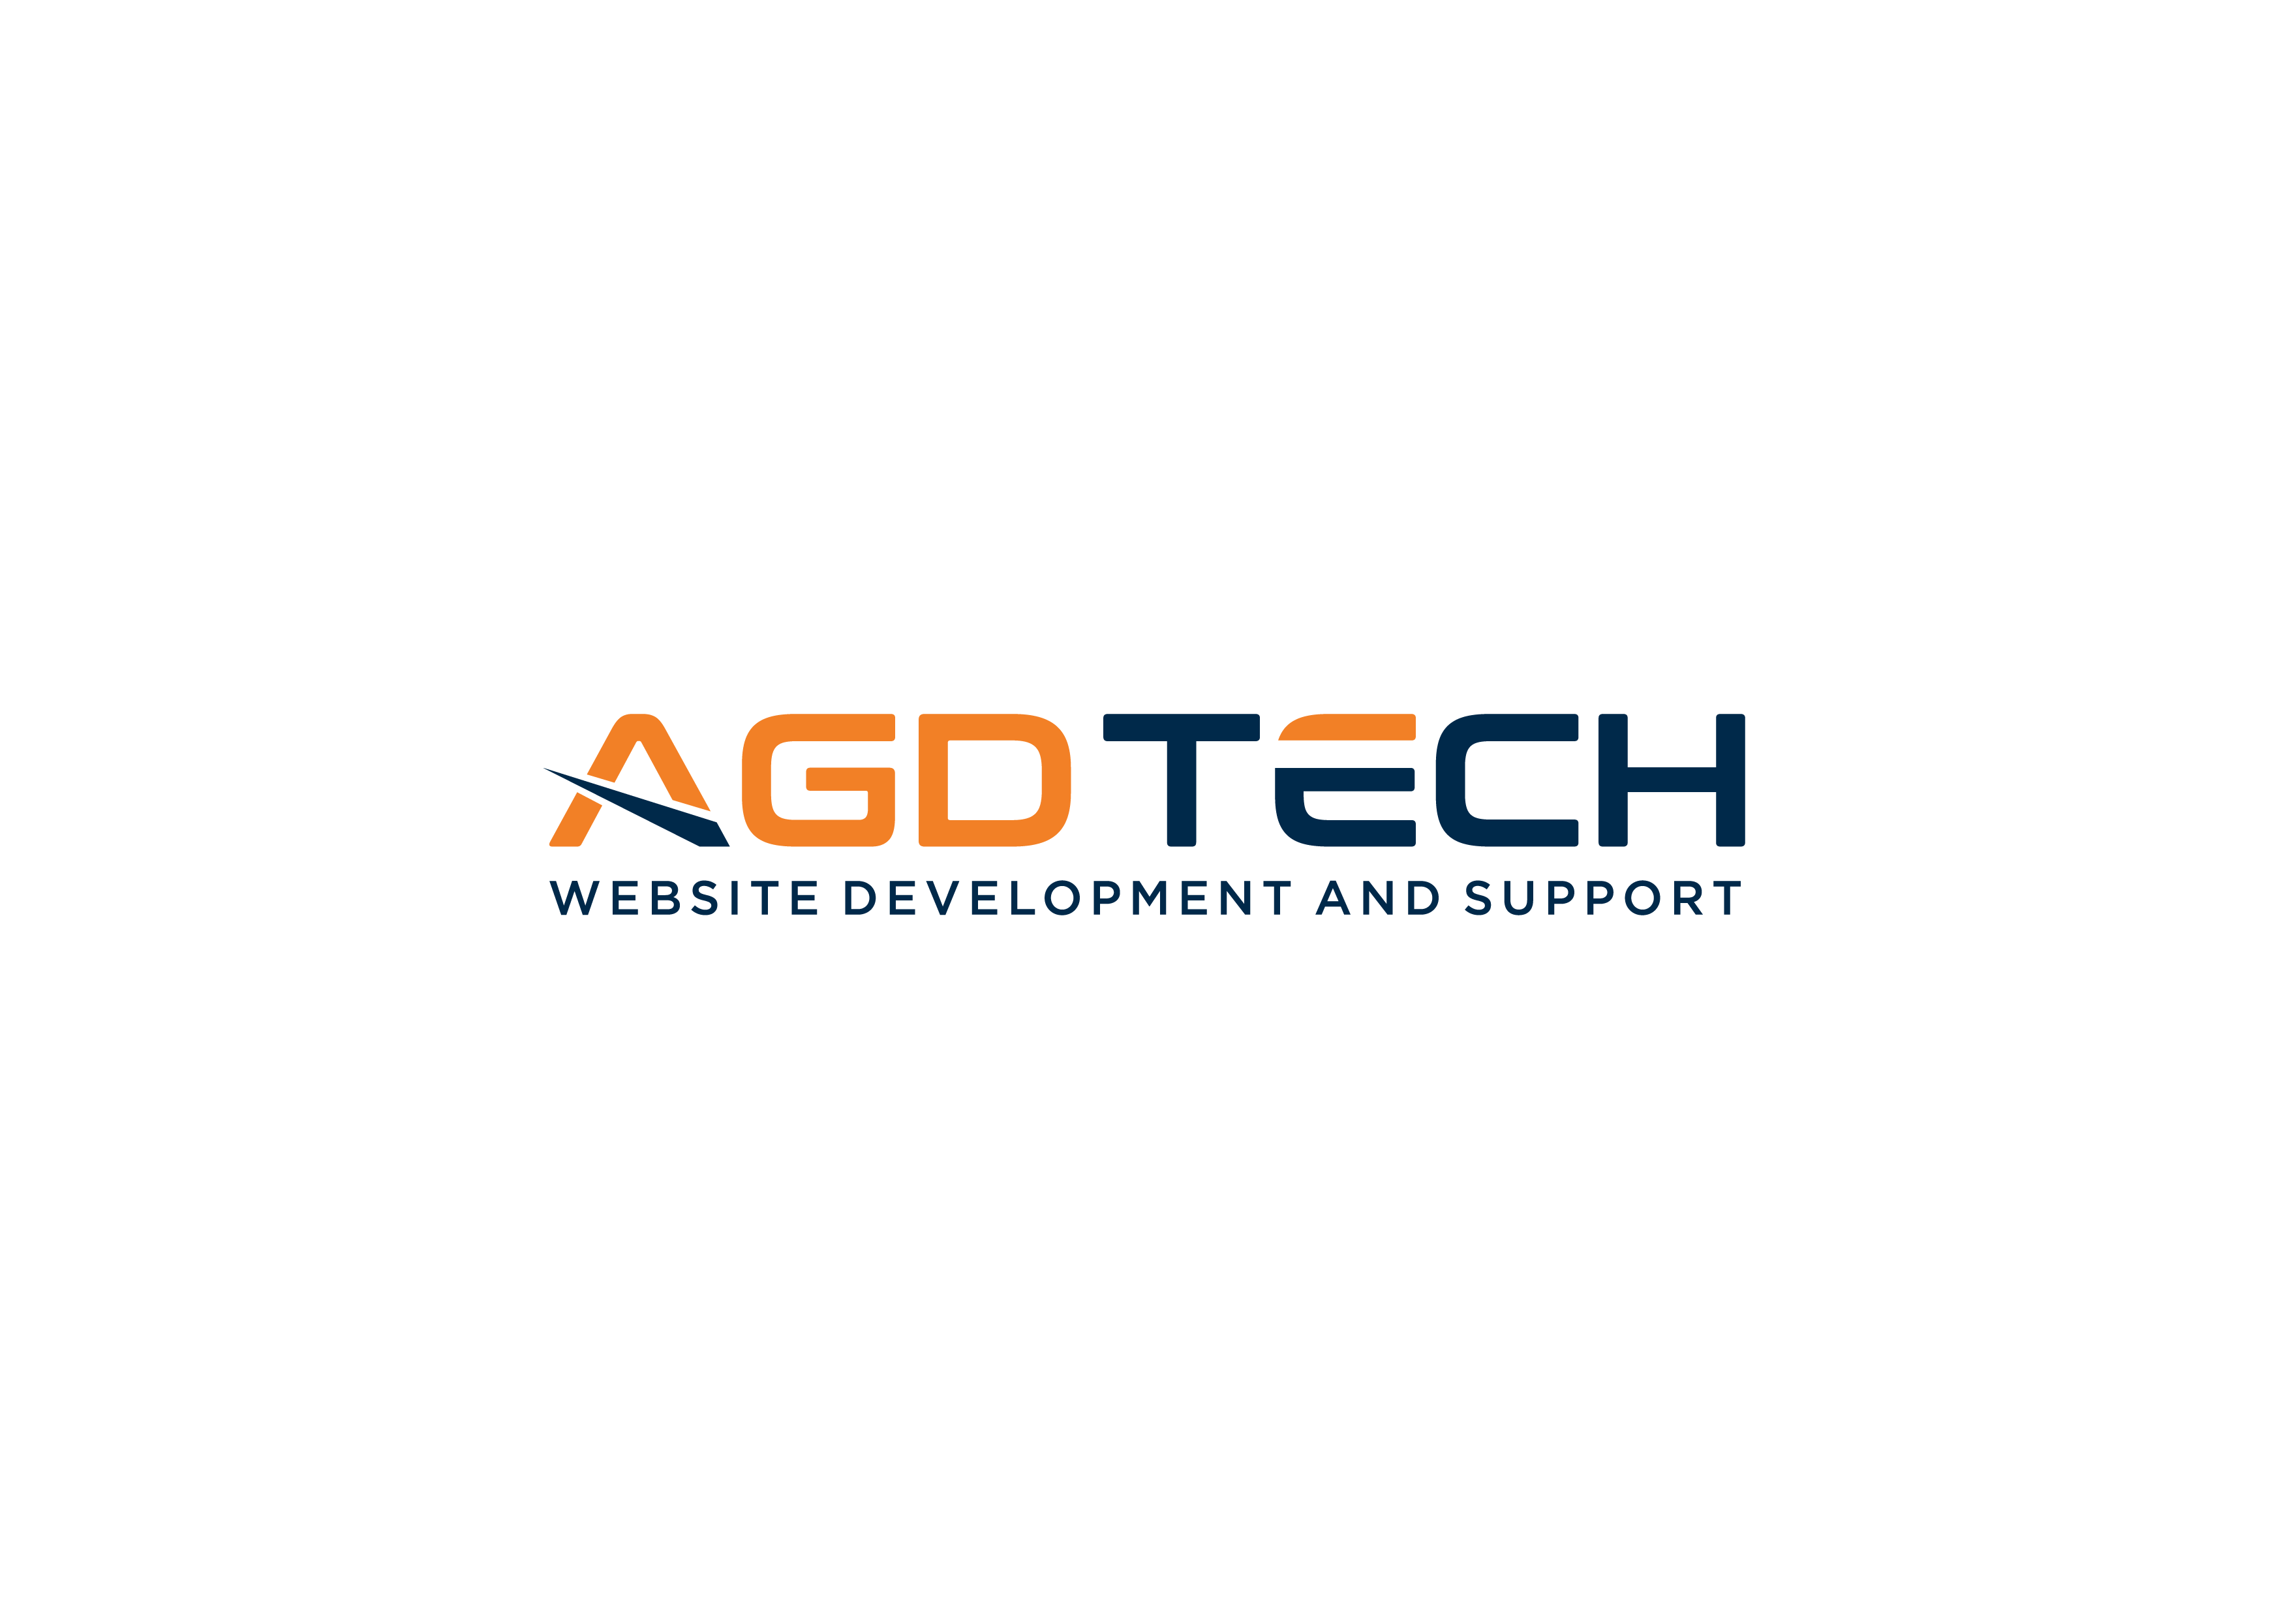 Design a Cool, Clean, Modern logo for AGD Tech that will look good on a t-shirt